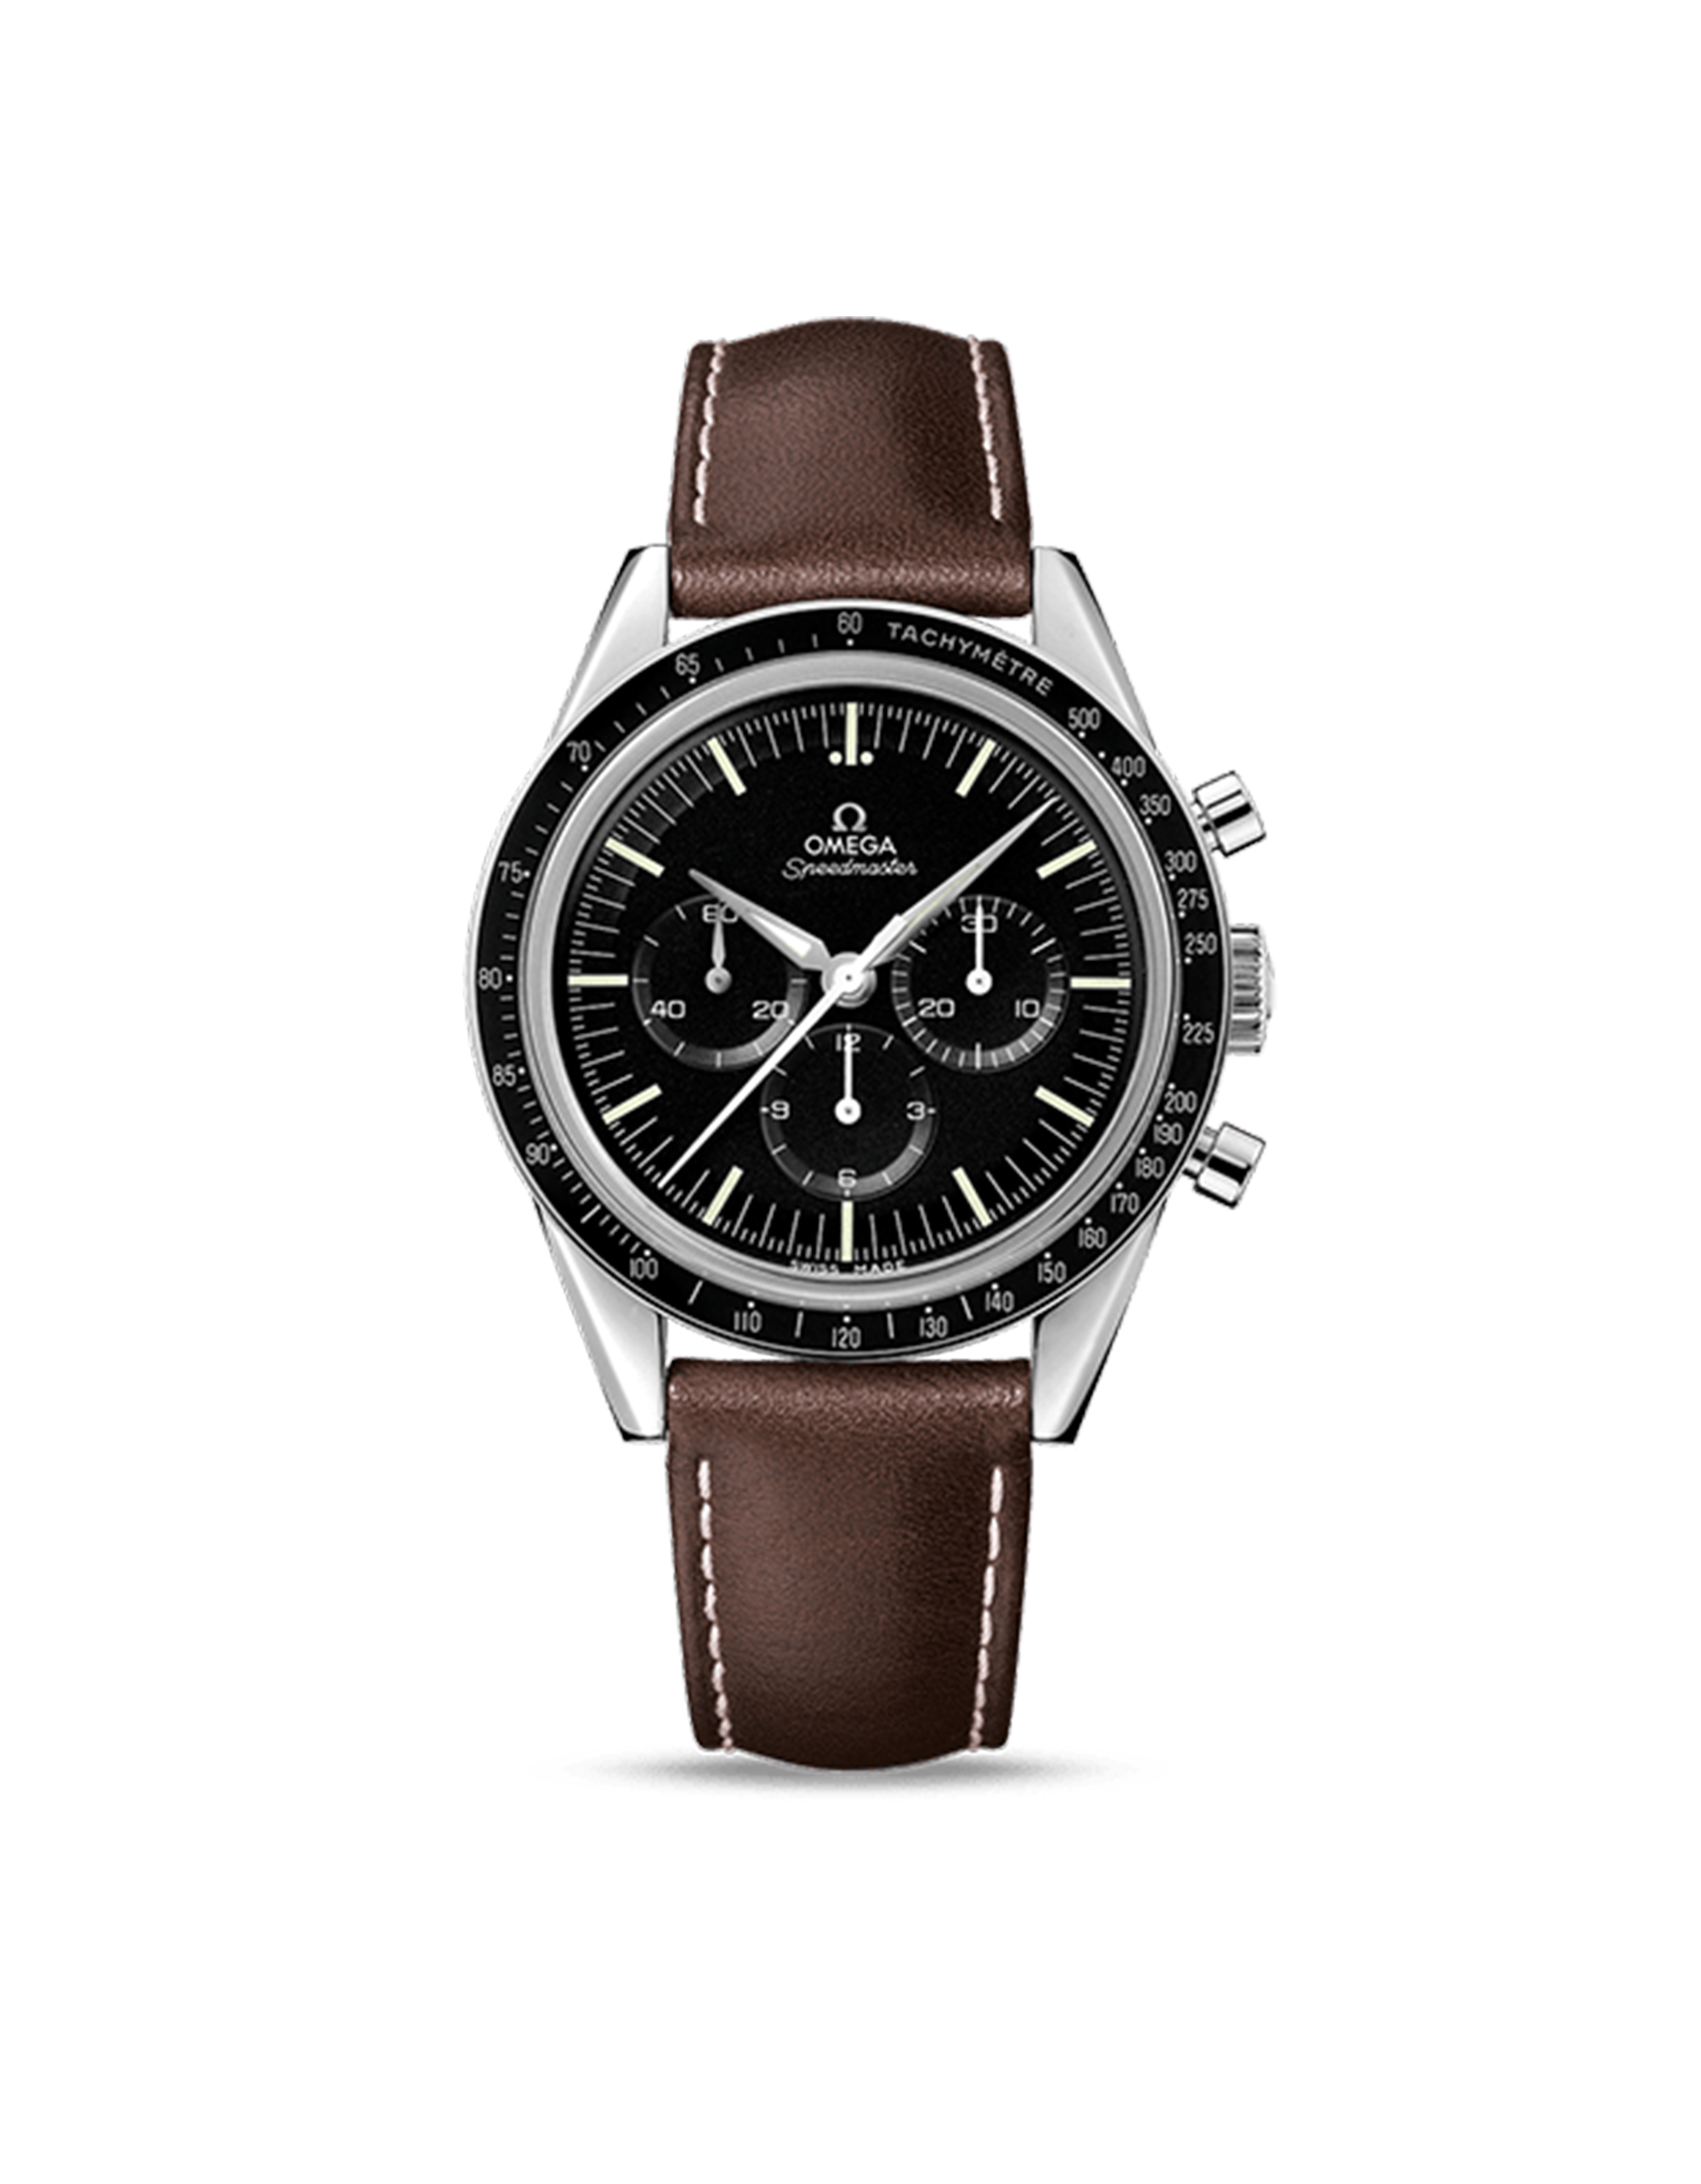 Speedmaster Moonwatch Chronograph 39.7 mm